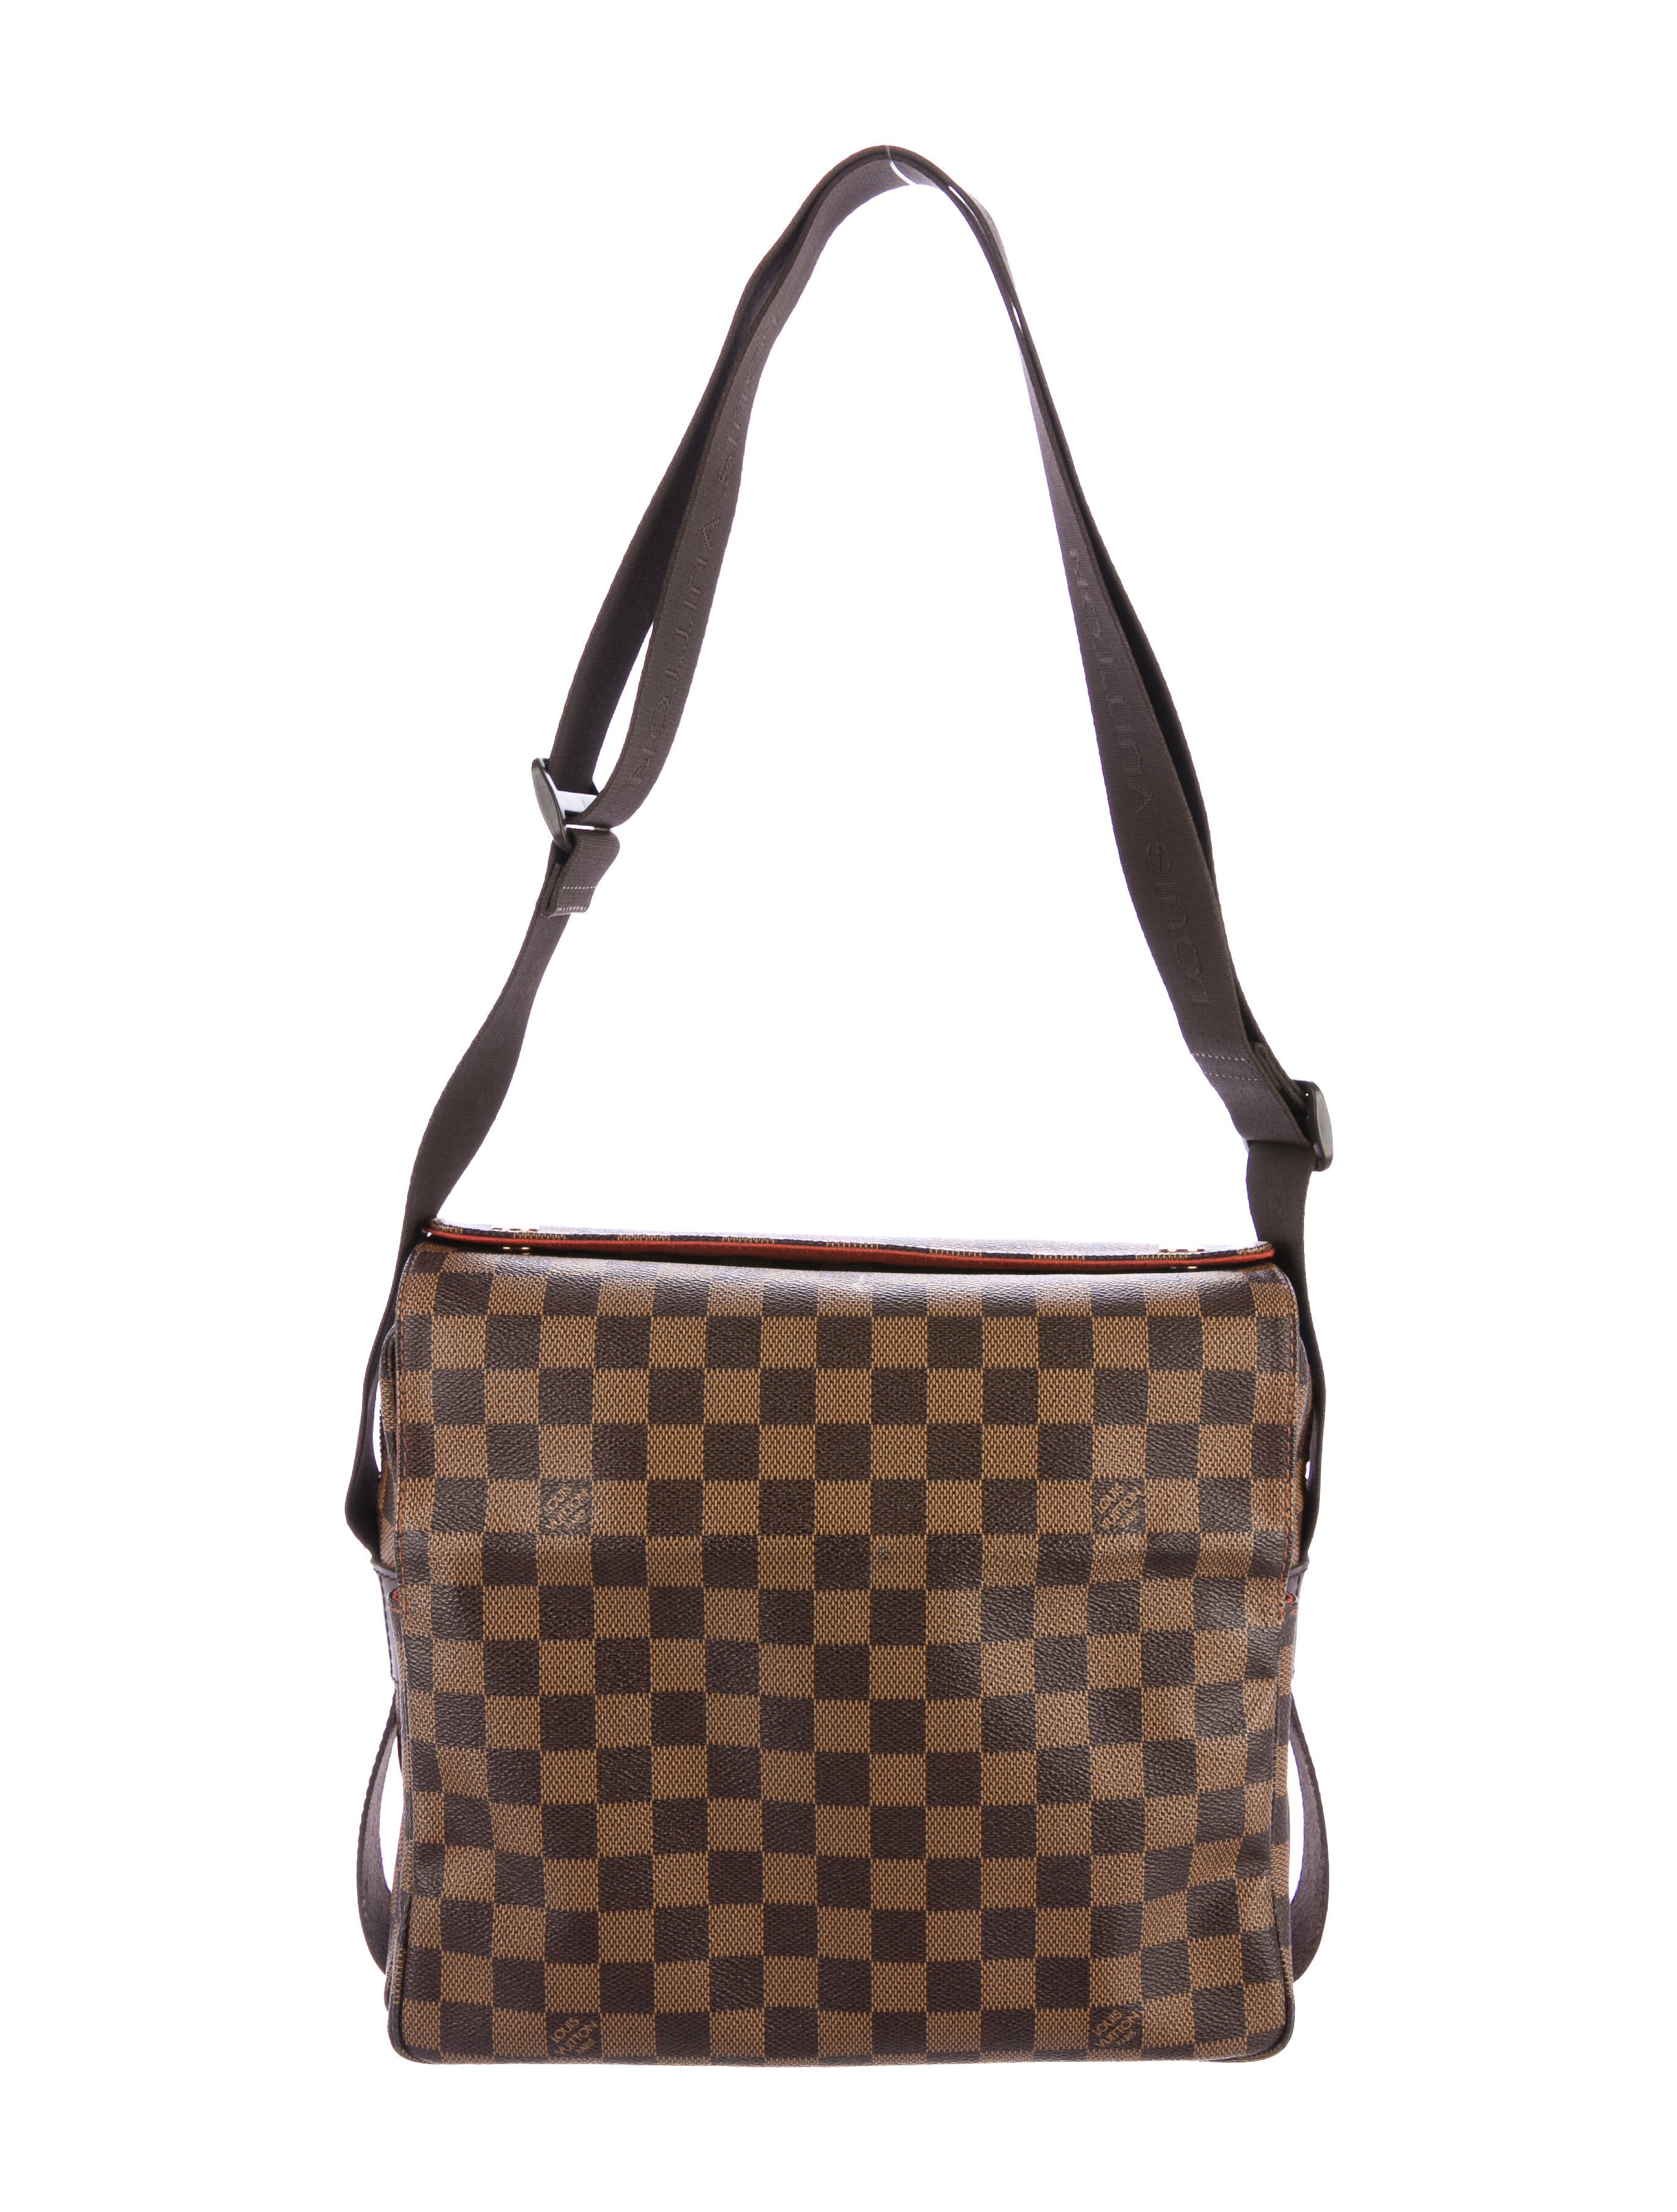 Simple Louis Vuitton Monogram Underground Messenger Bag - Handbags - LOU130025 | The RealReal